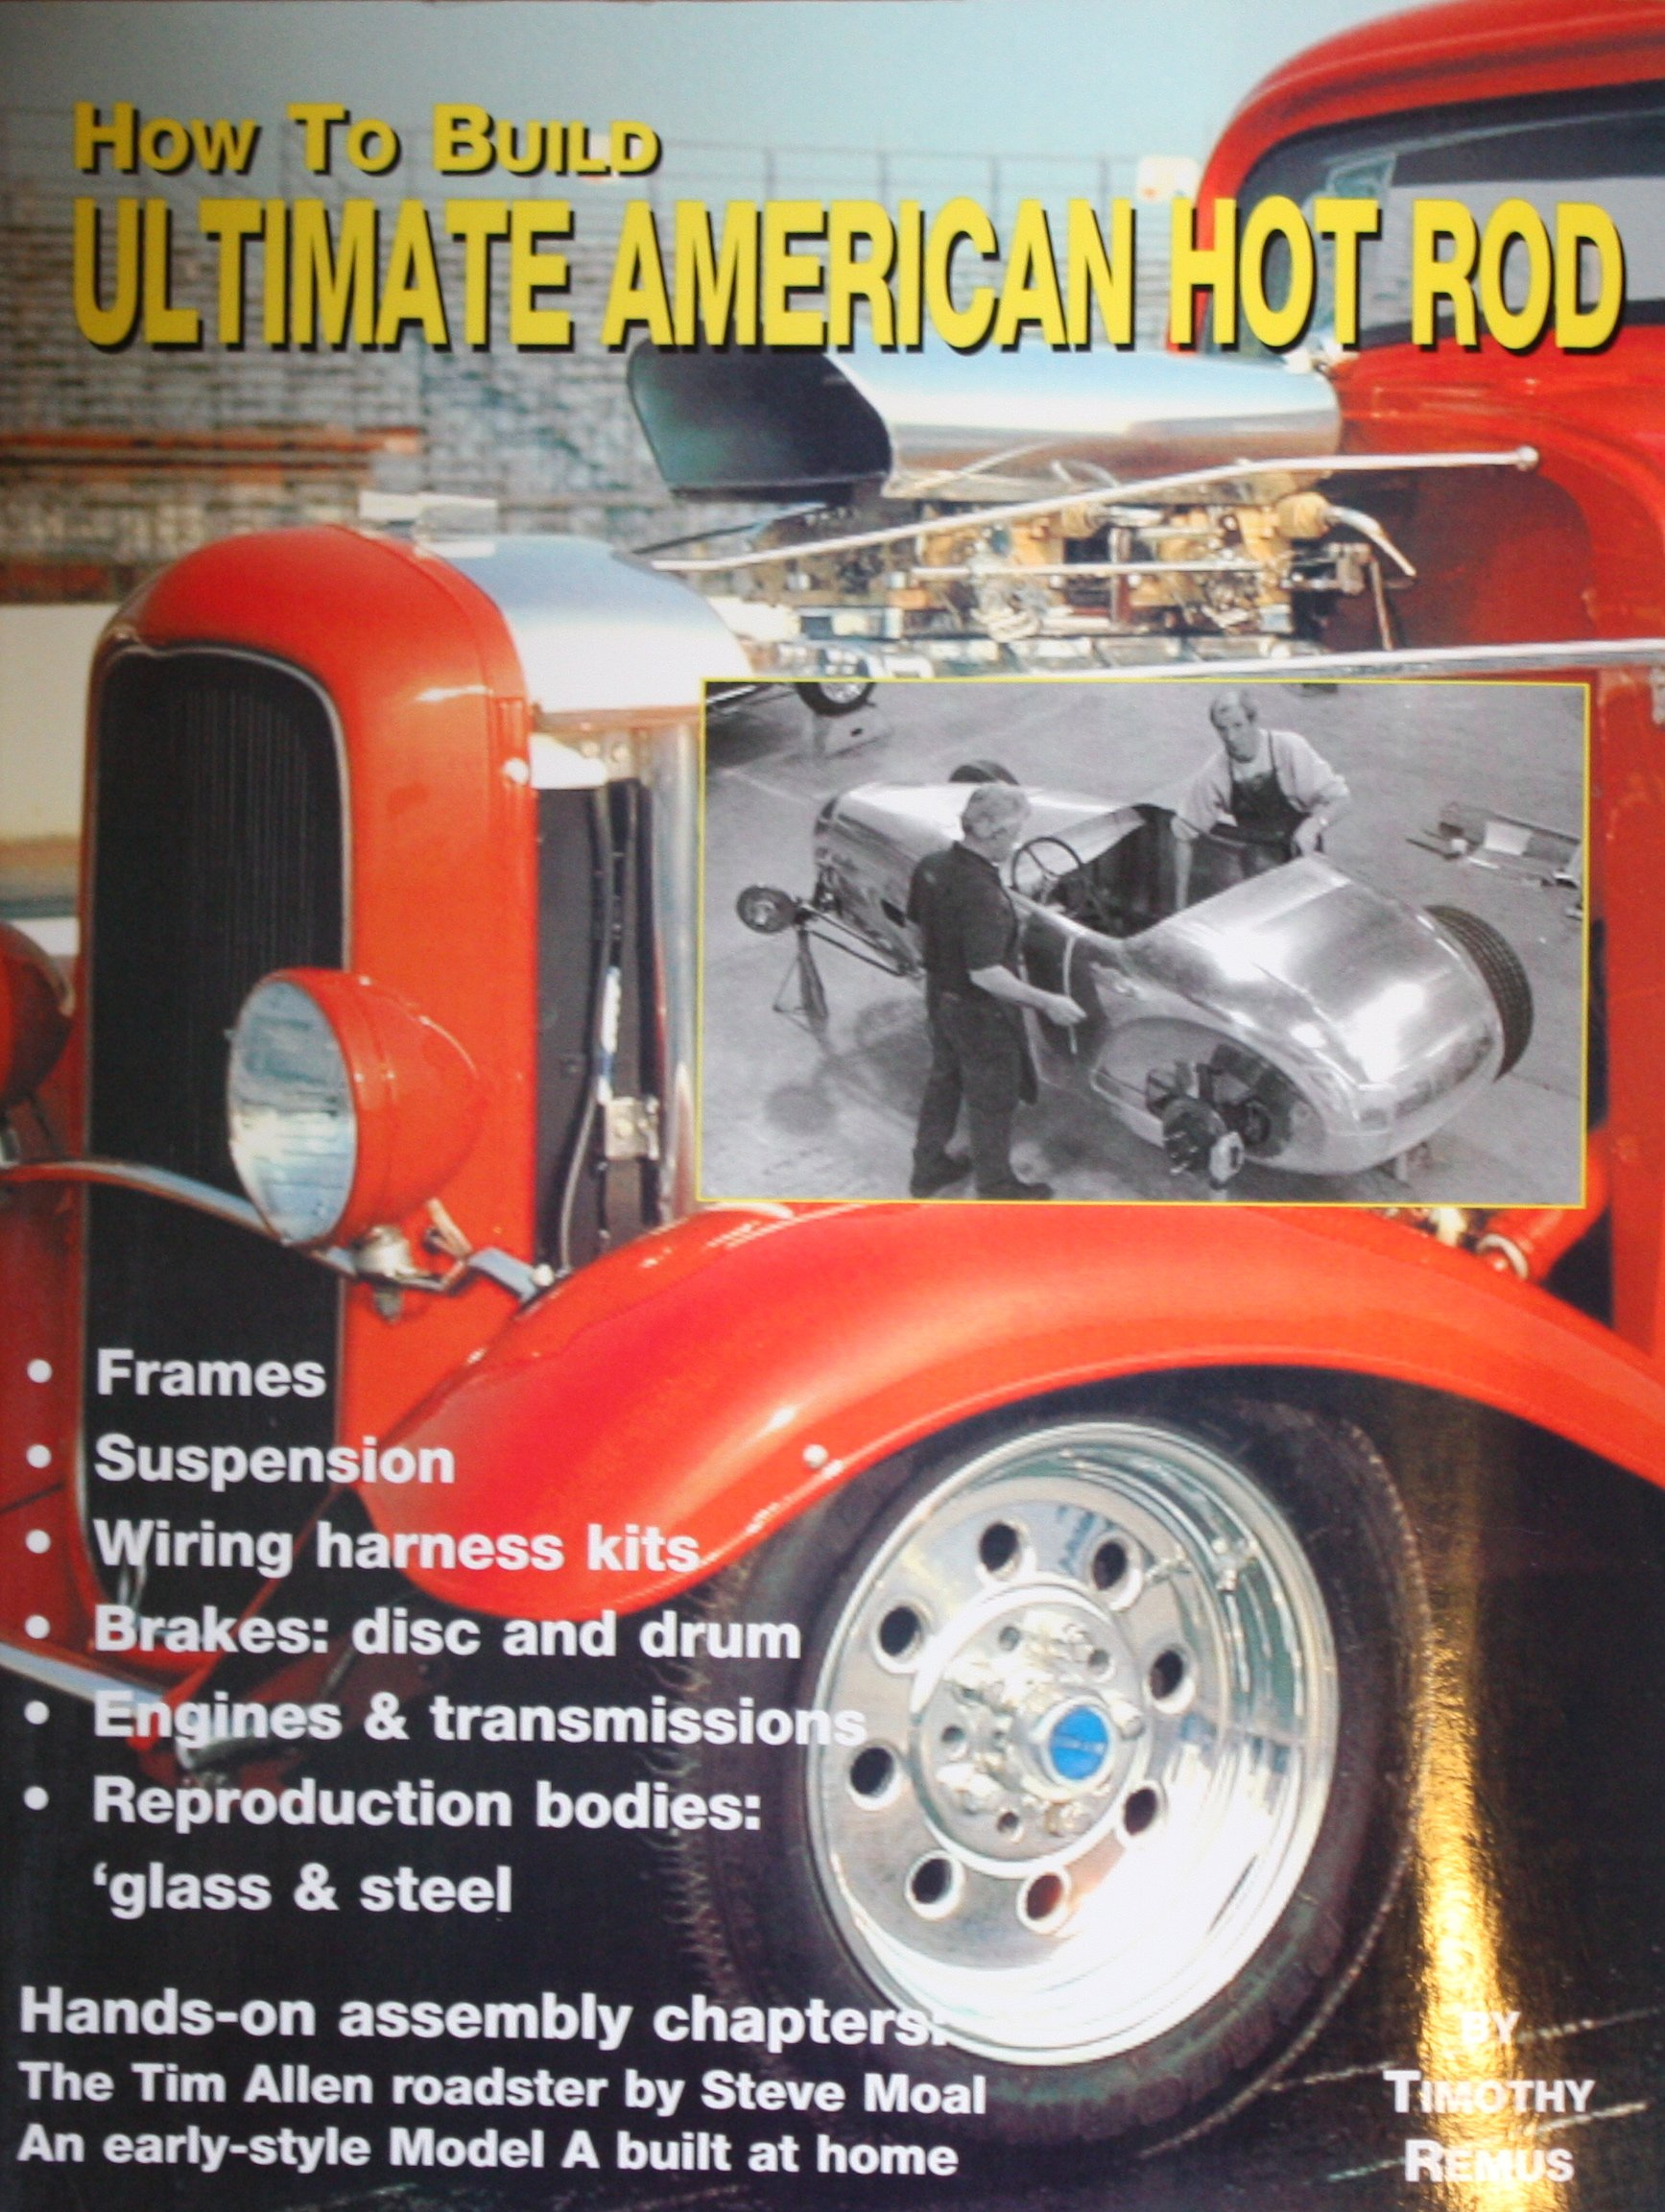 How To Build The Ultimate America Hot Rod Timothy Remus Classic Car Wiring Harness Kits 9780964135888 Books